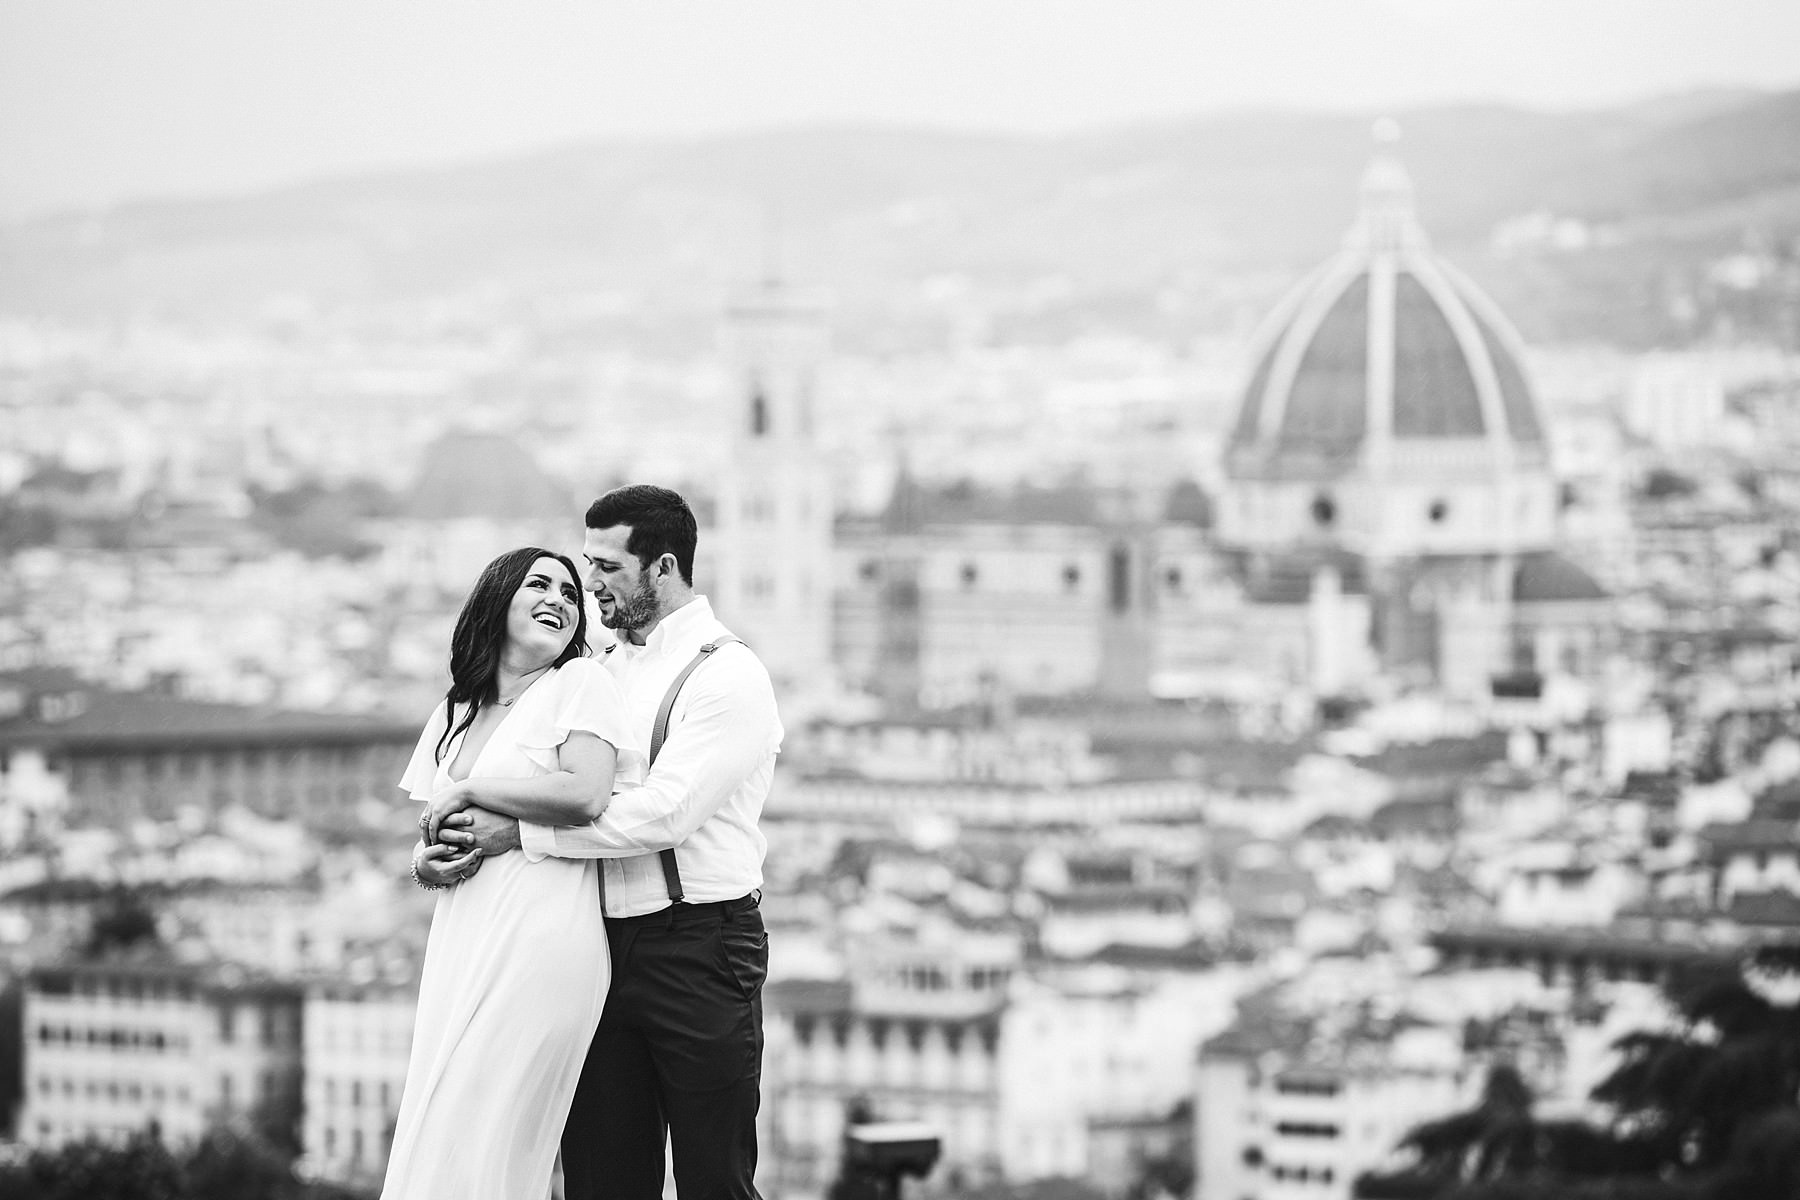 Unforgettable intimate elopement wedding photo session in Florence, Tuscany